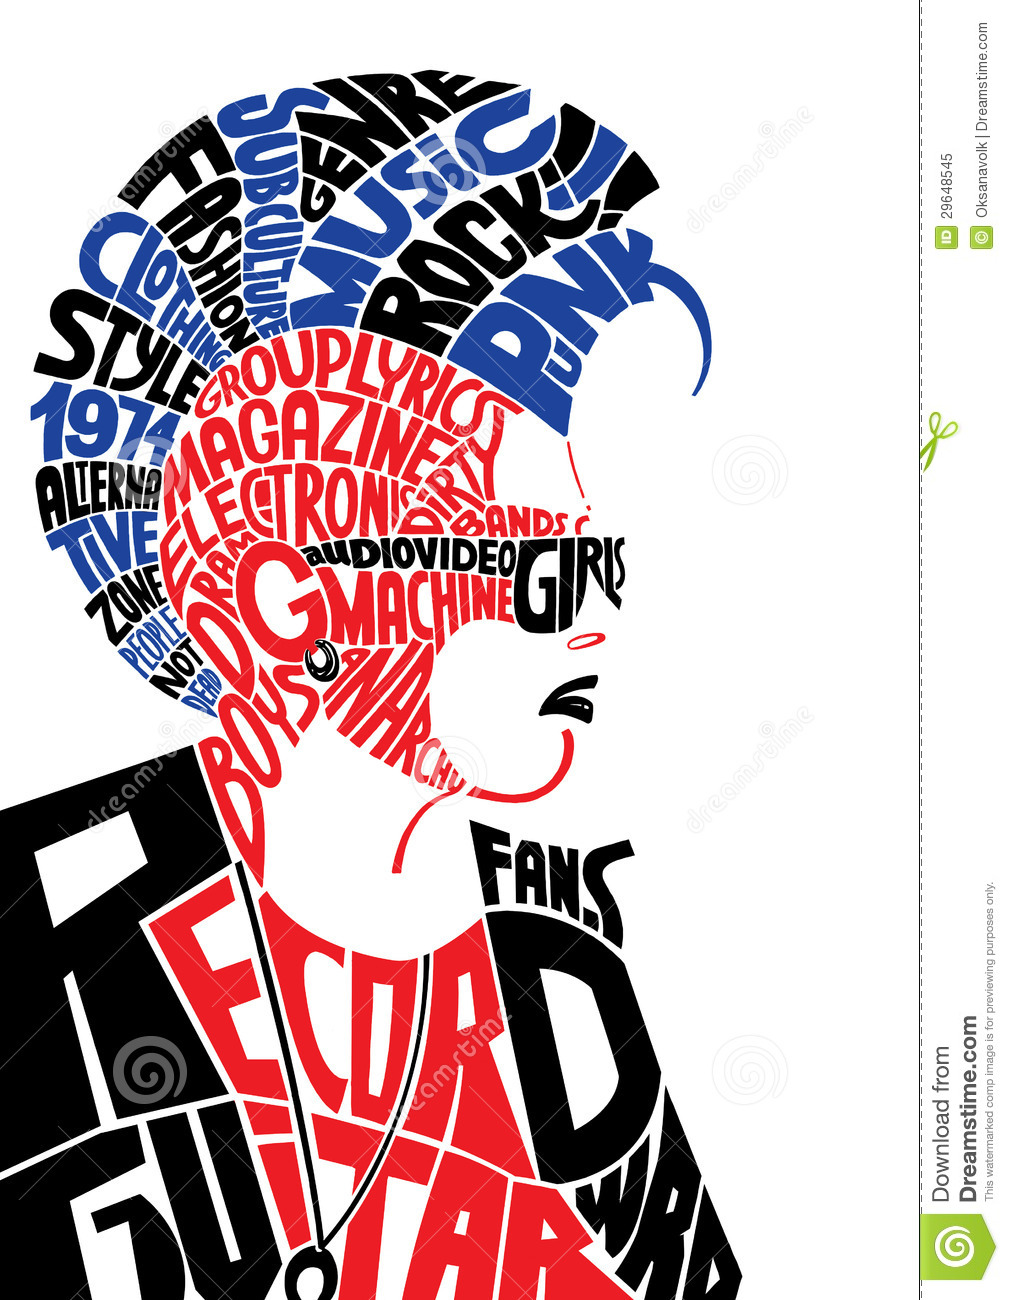 Young Male Punk Subculture Typographic Portrait Stock